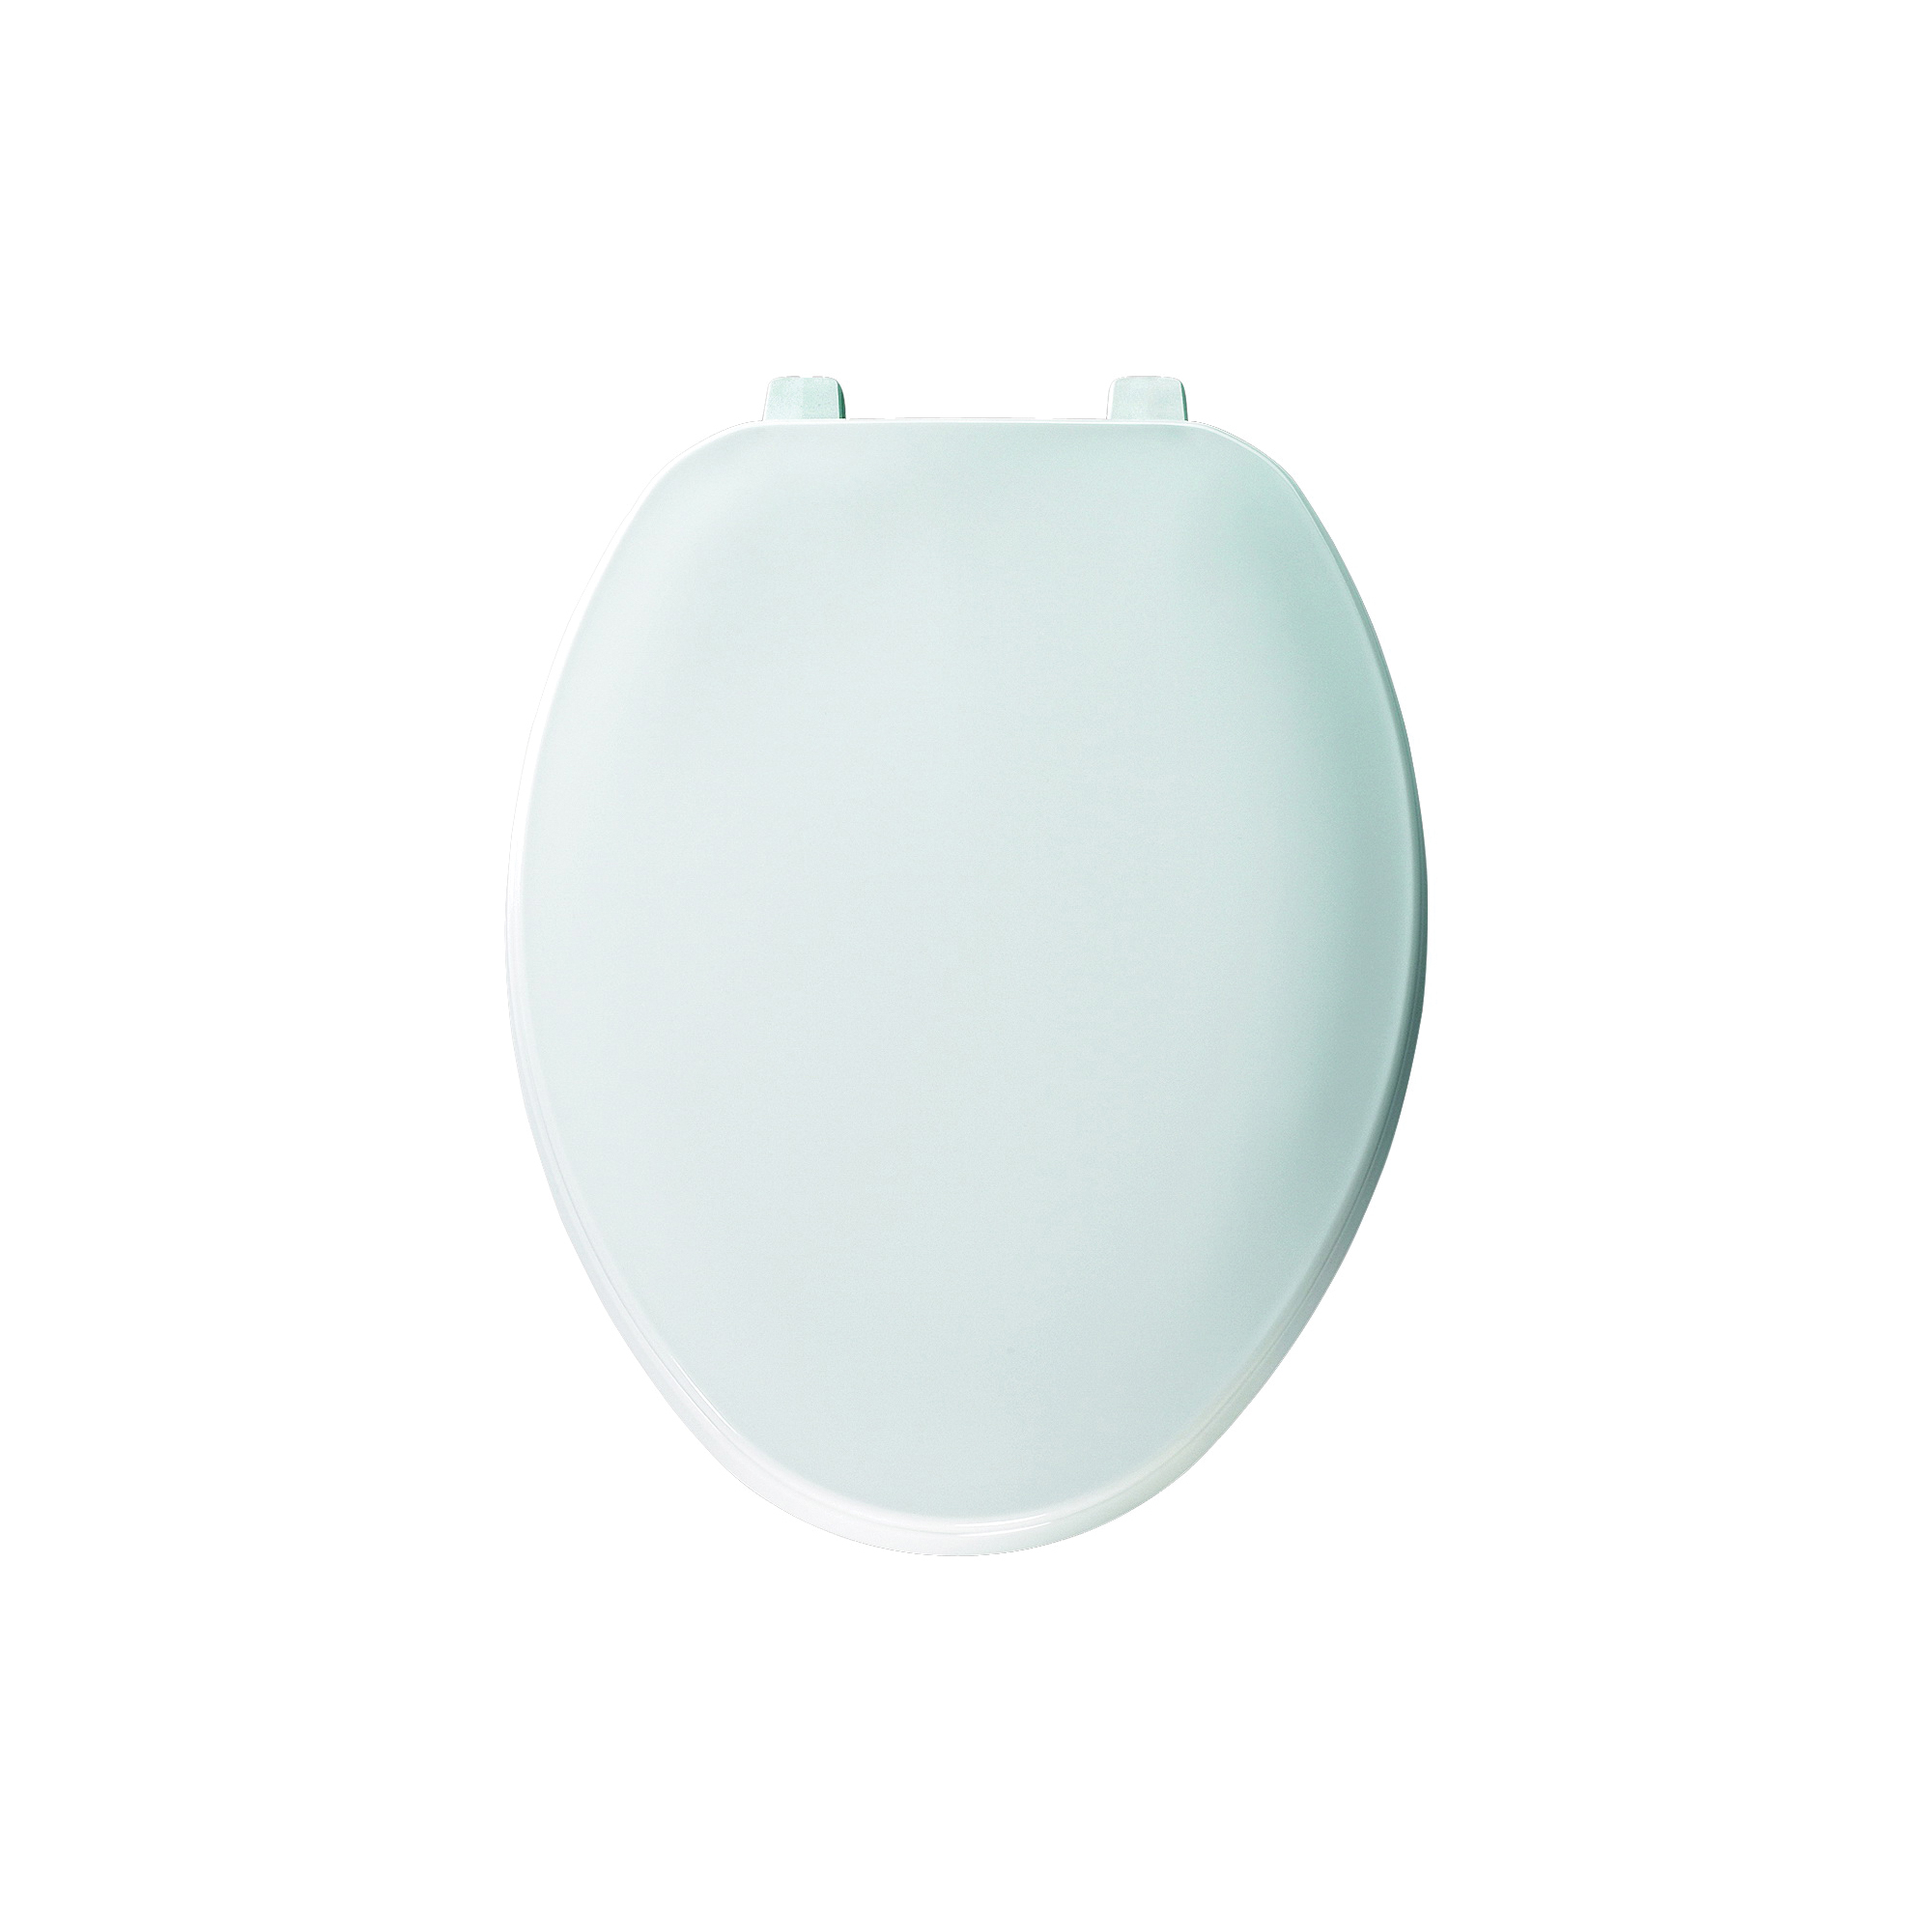 Bemis® 170 000 Traditional Toilet Seat With Cover, Elongated Bowl, Closed Front, Plastic, White, Top-Tite® Hinge, Domestic